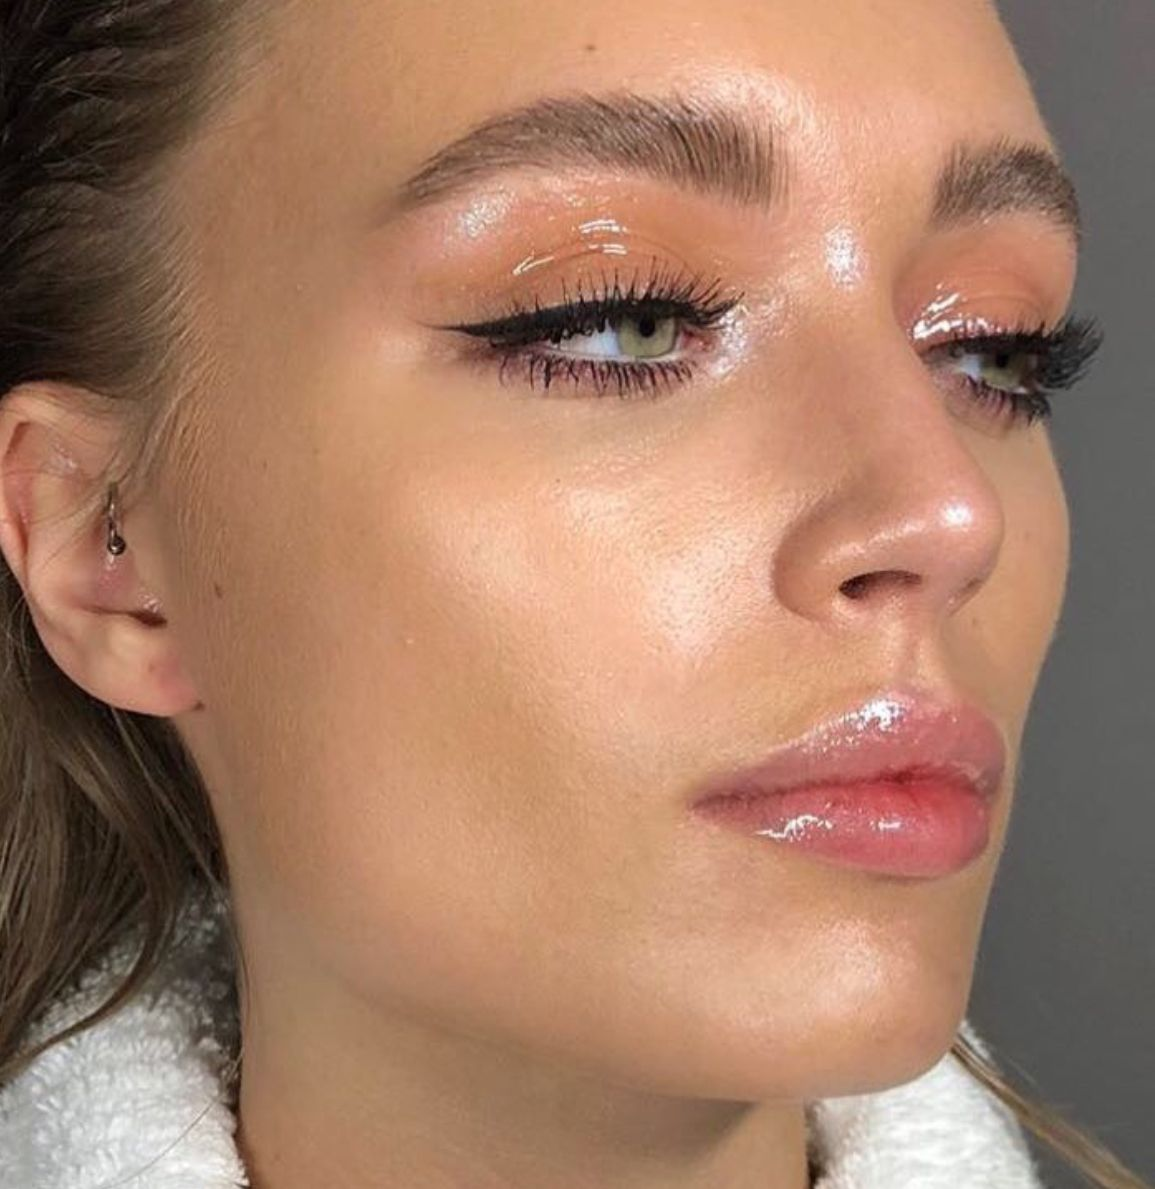 Get The Wet Look Makeup For Valentine's Day